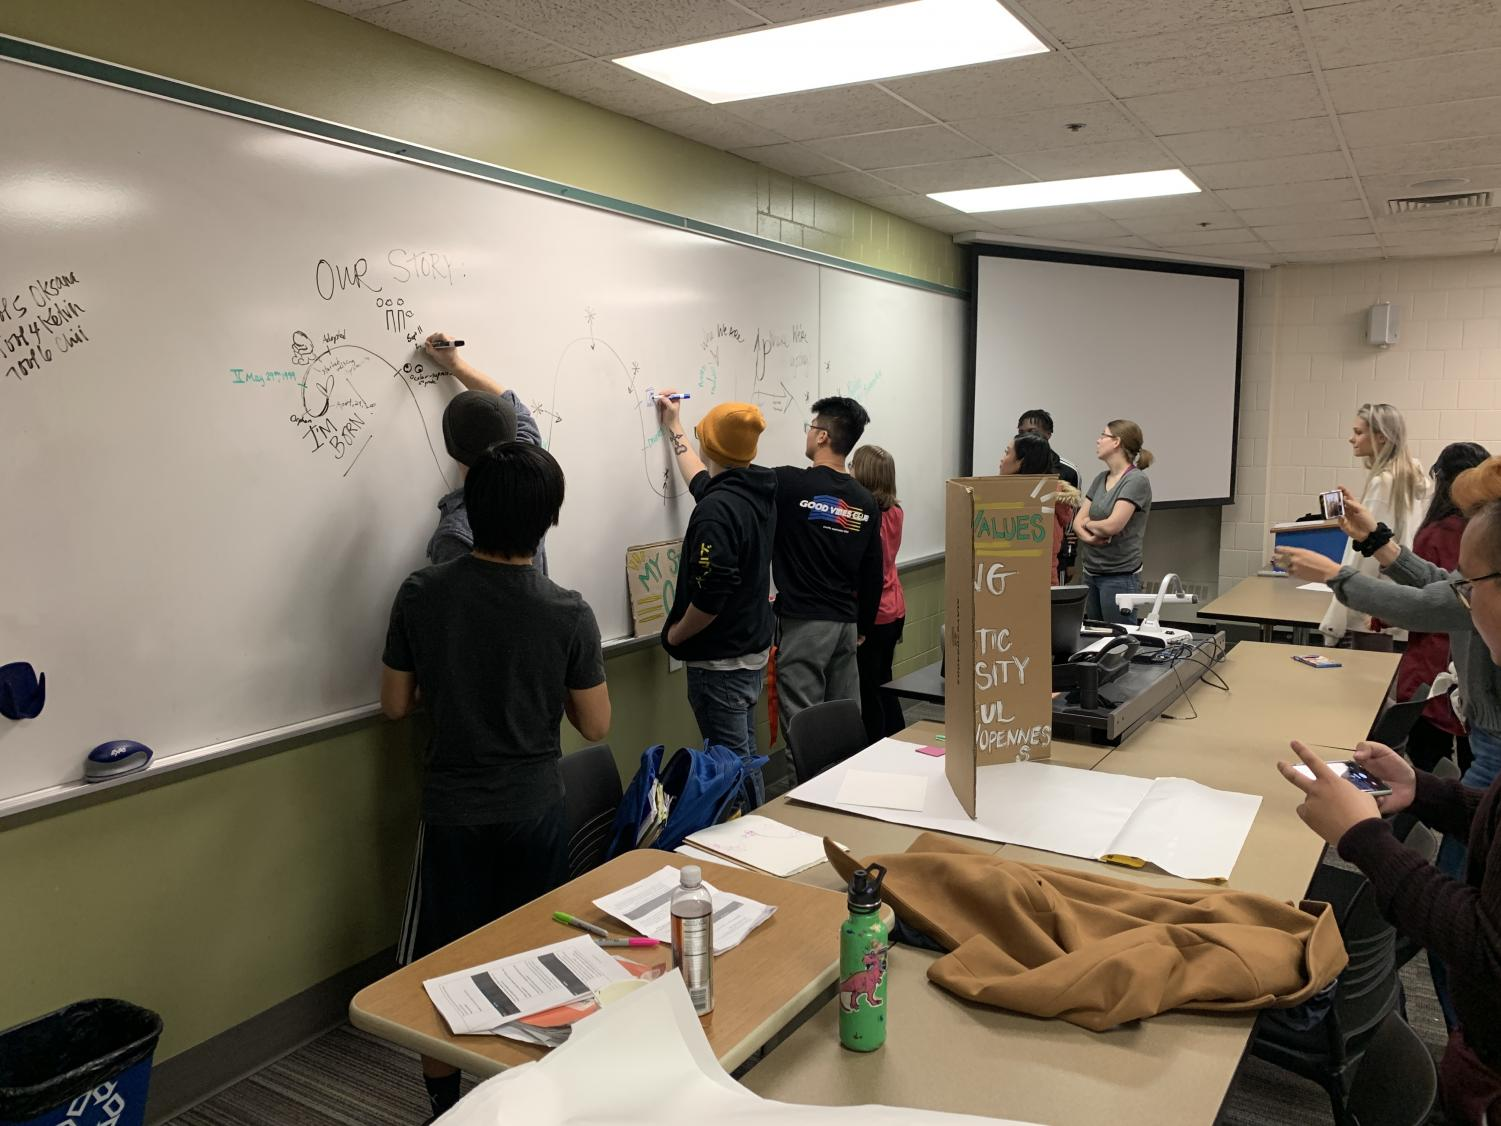 Students sharing their life experiences with one another during McLain's workshop on Nov. 7 at Anoka-Ramsey Community College.